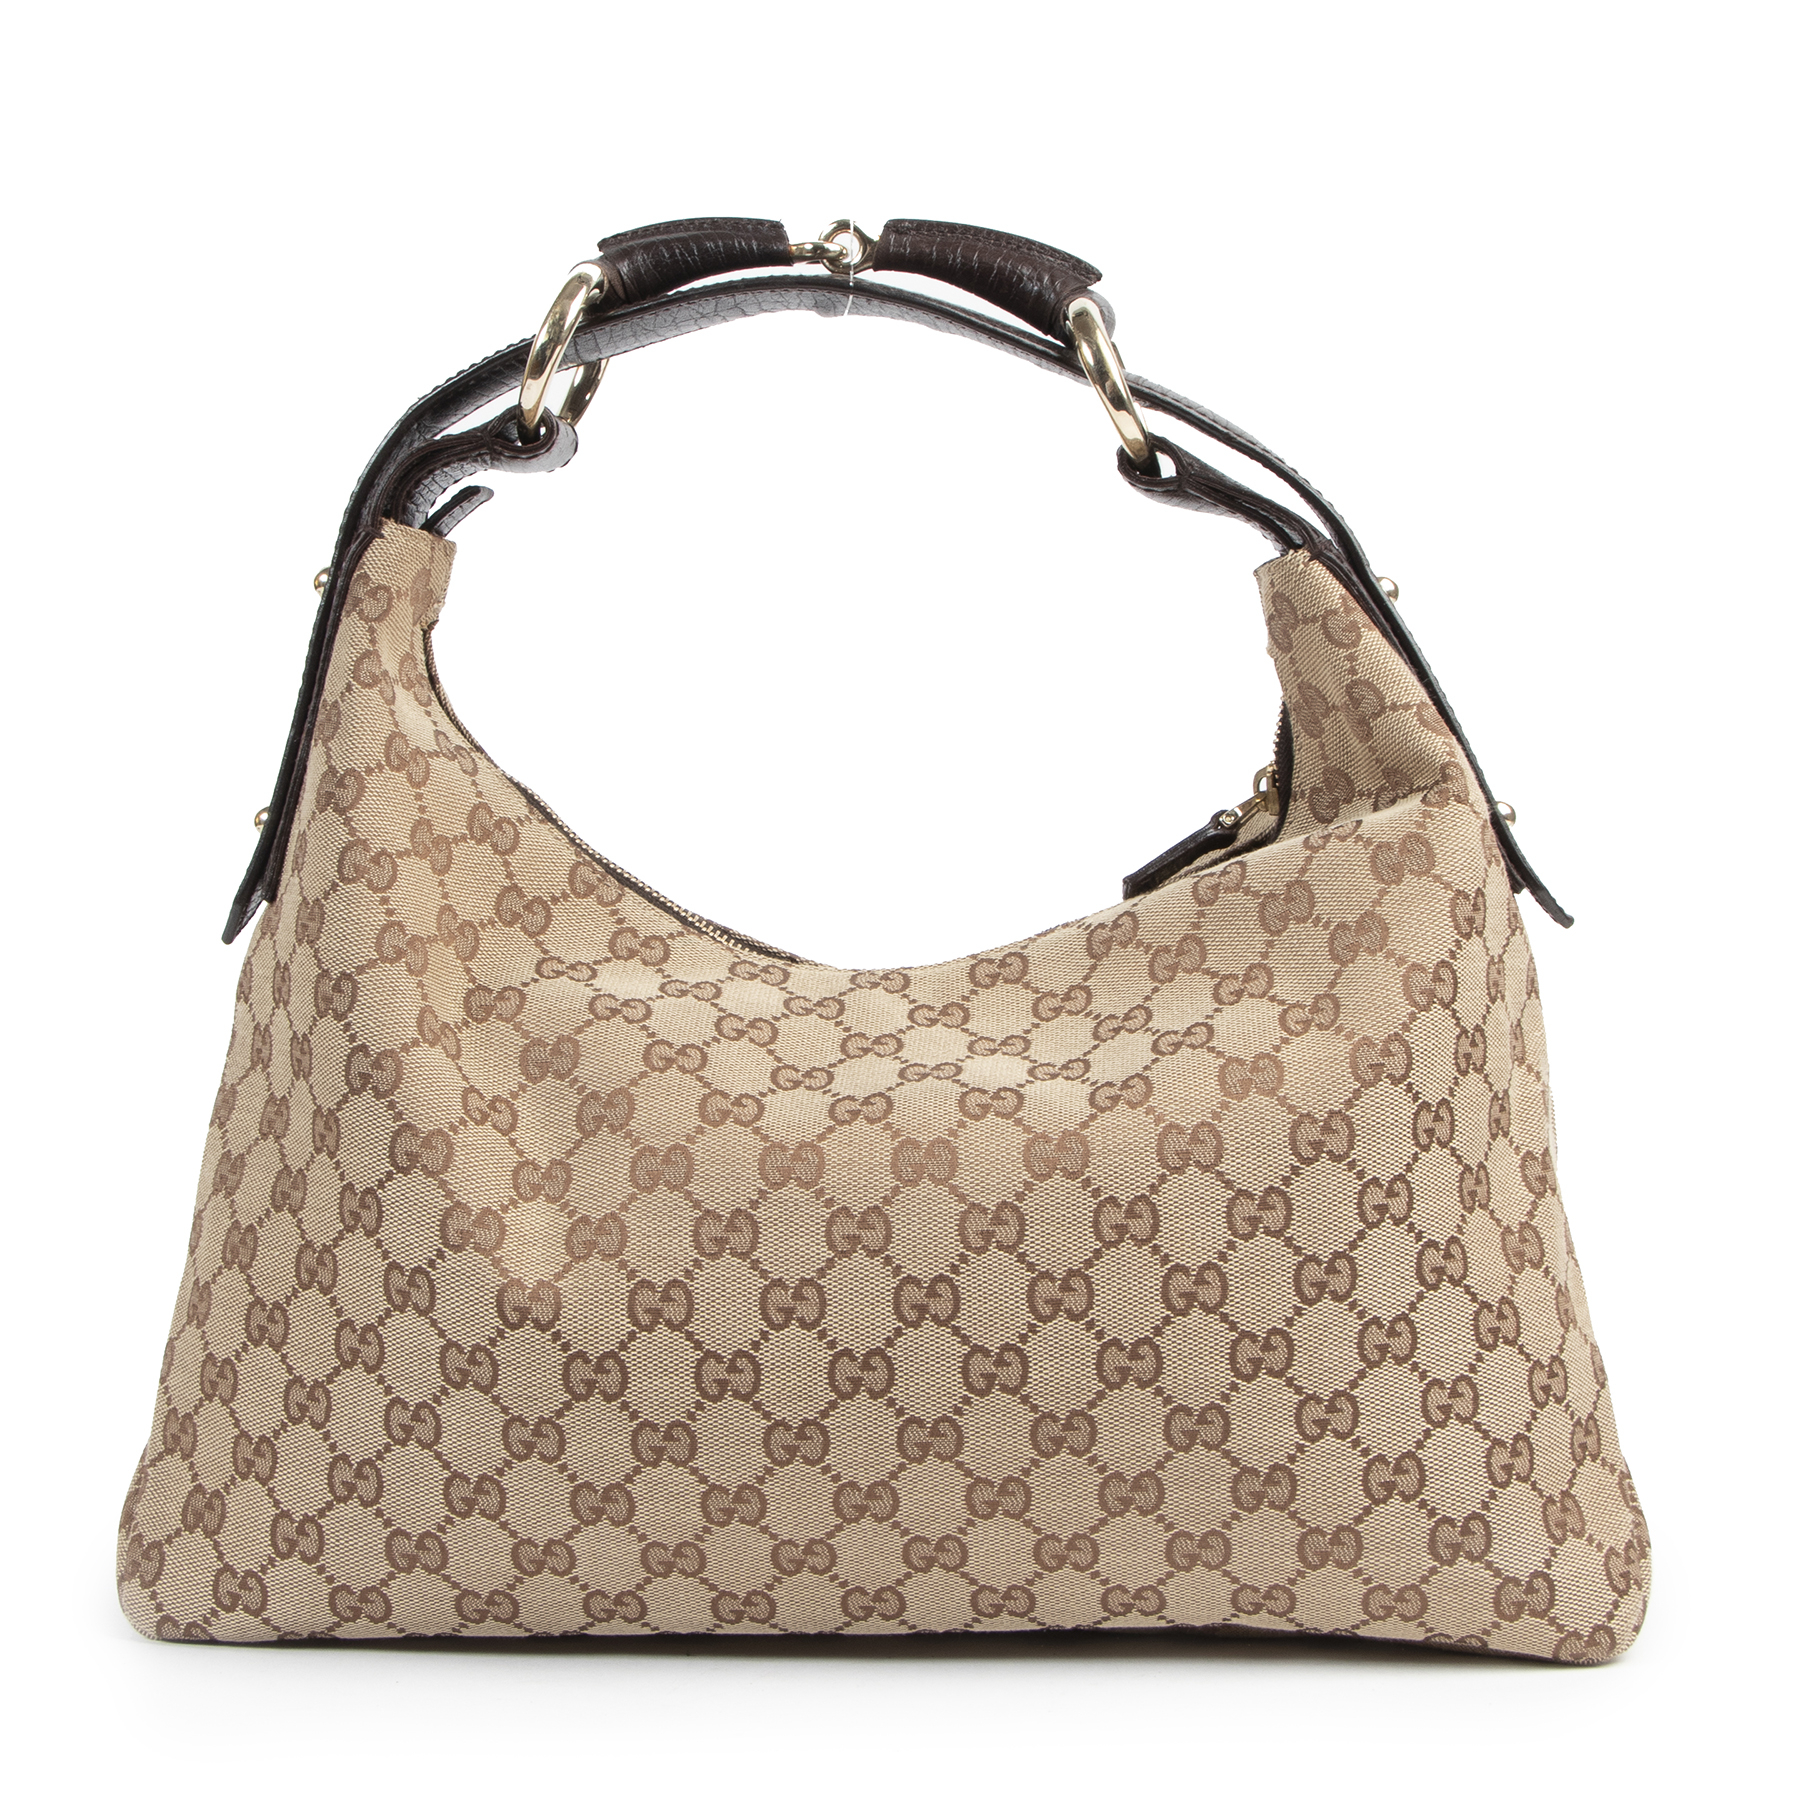 Authentic secondhand Gucci Monogram GG Shoulder Bag designer bags fashion luxury vintage webshop safe secure online shopping